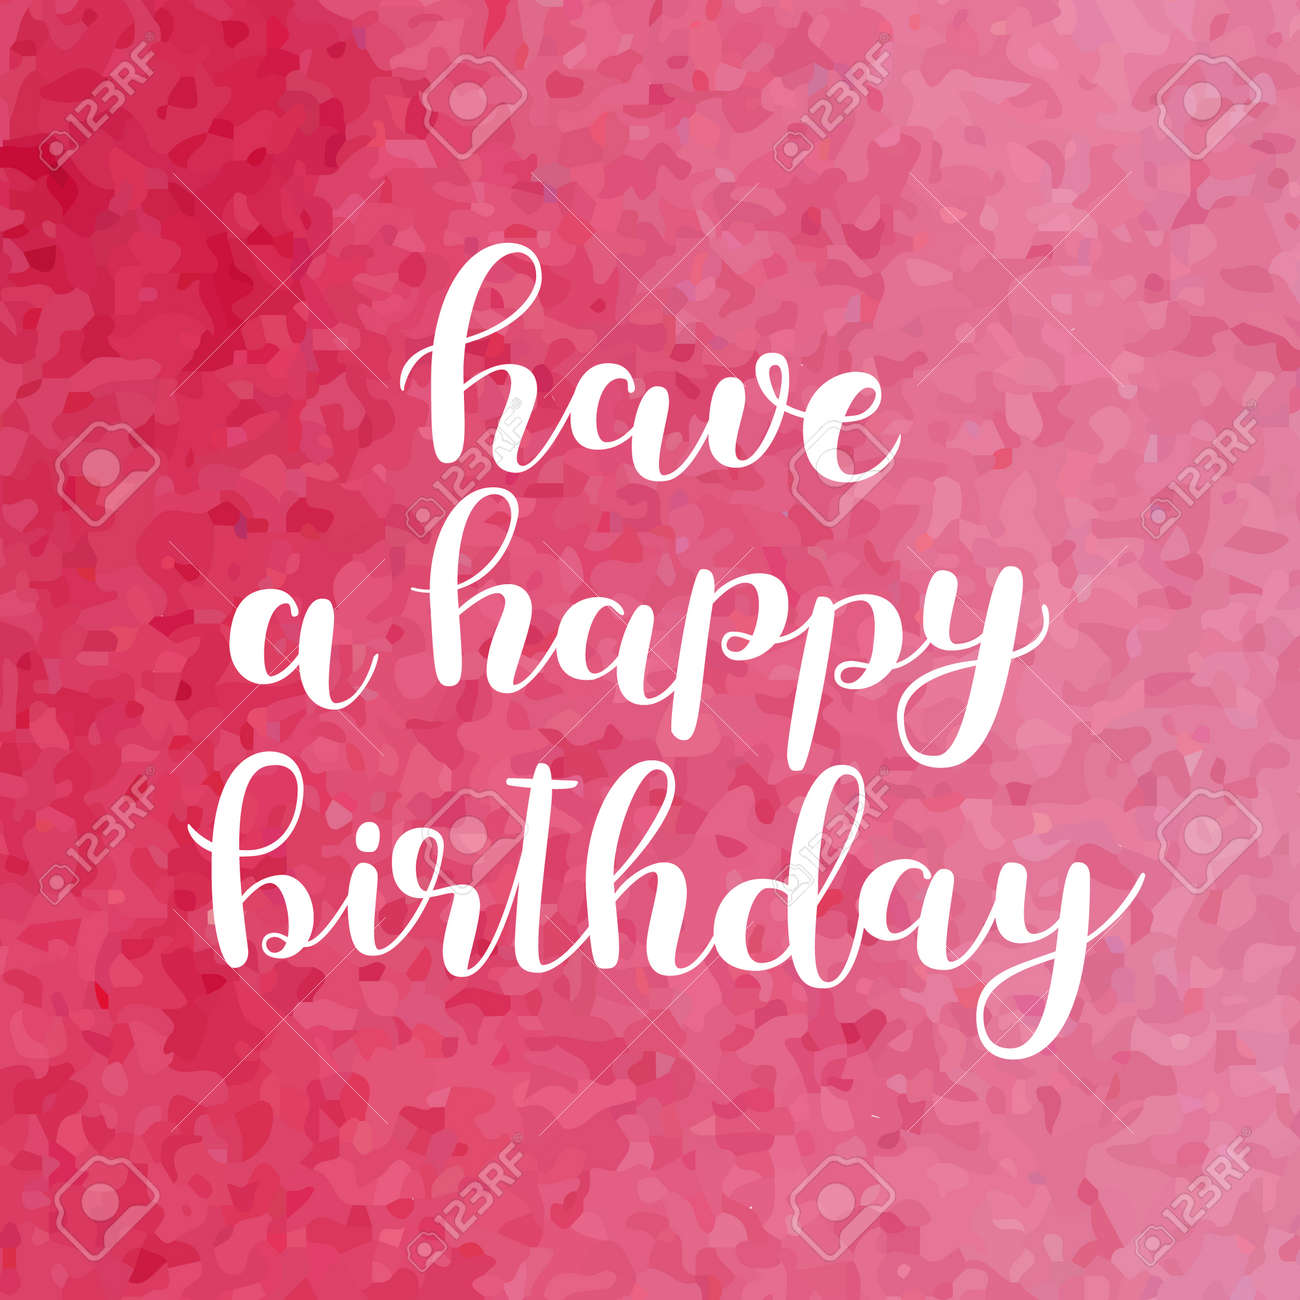 have a happy birthday brush hand lettering inspiring quote